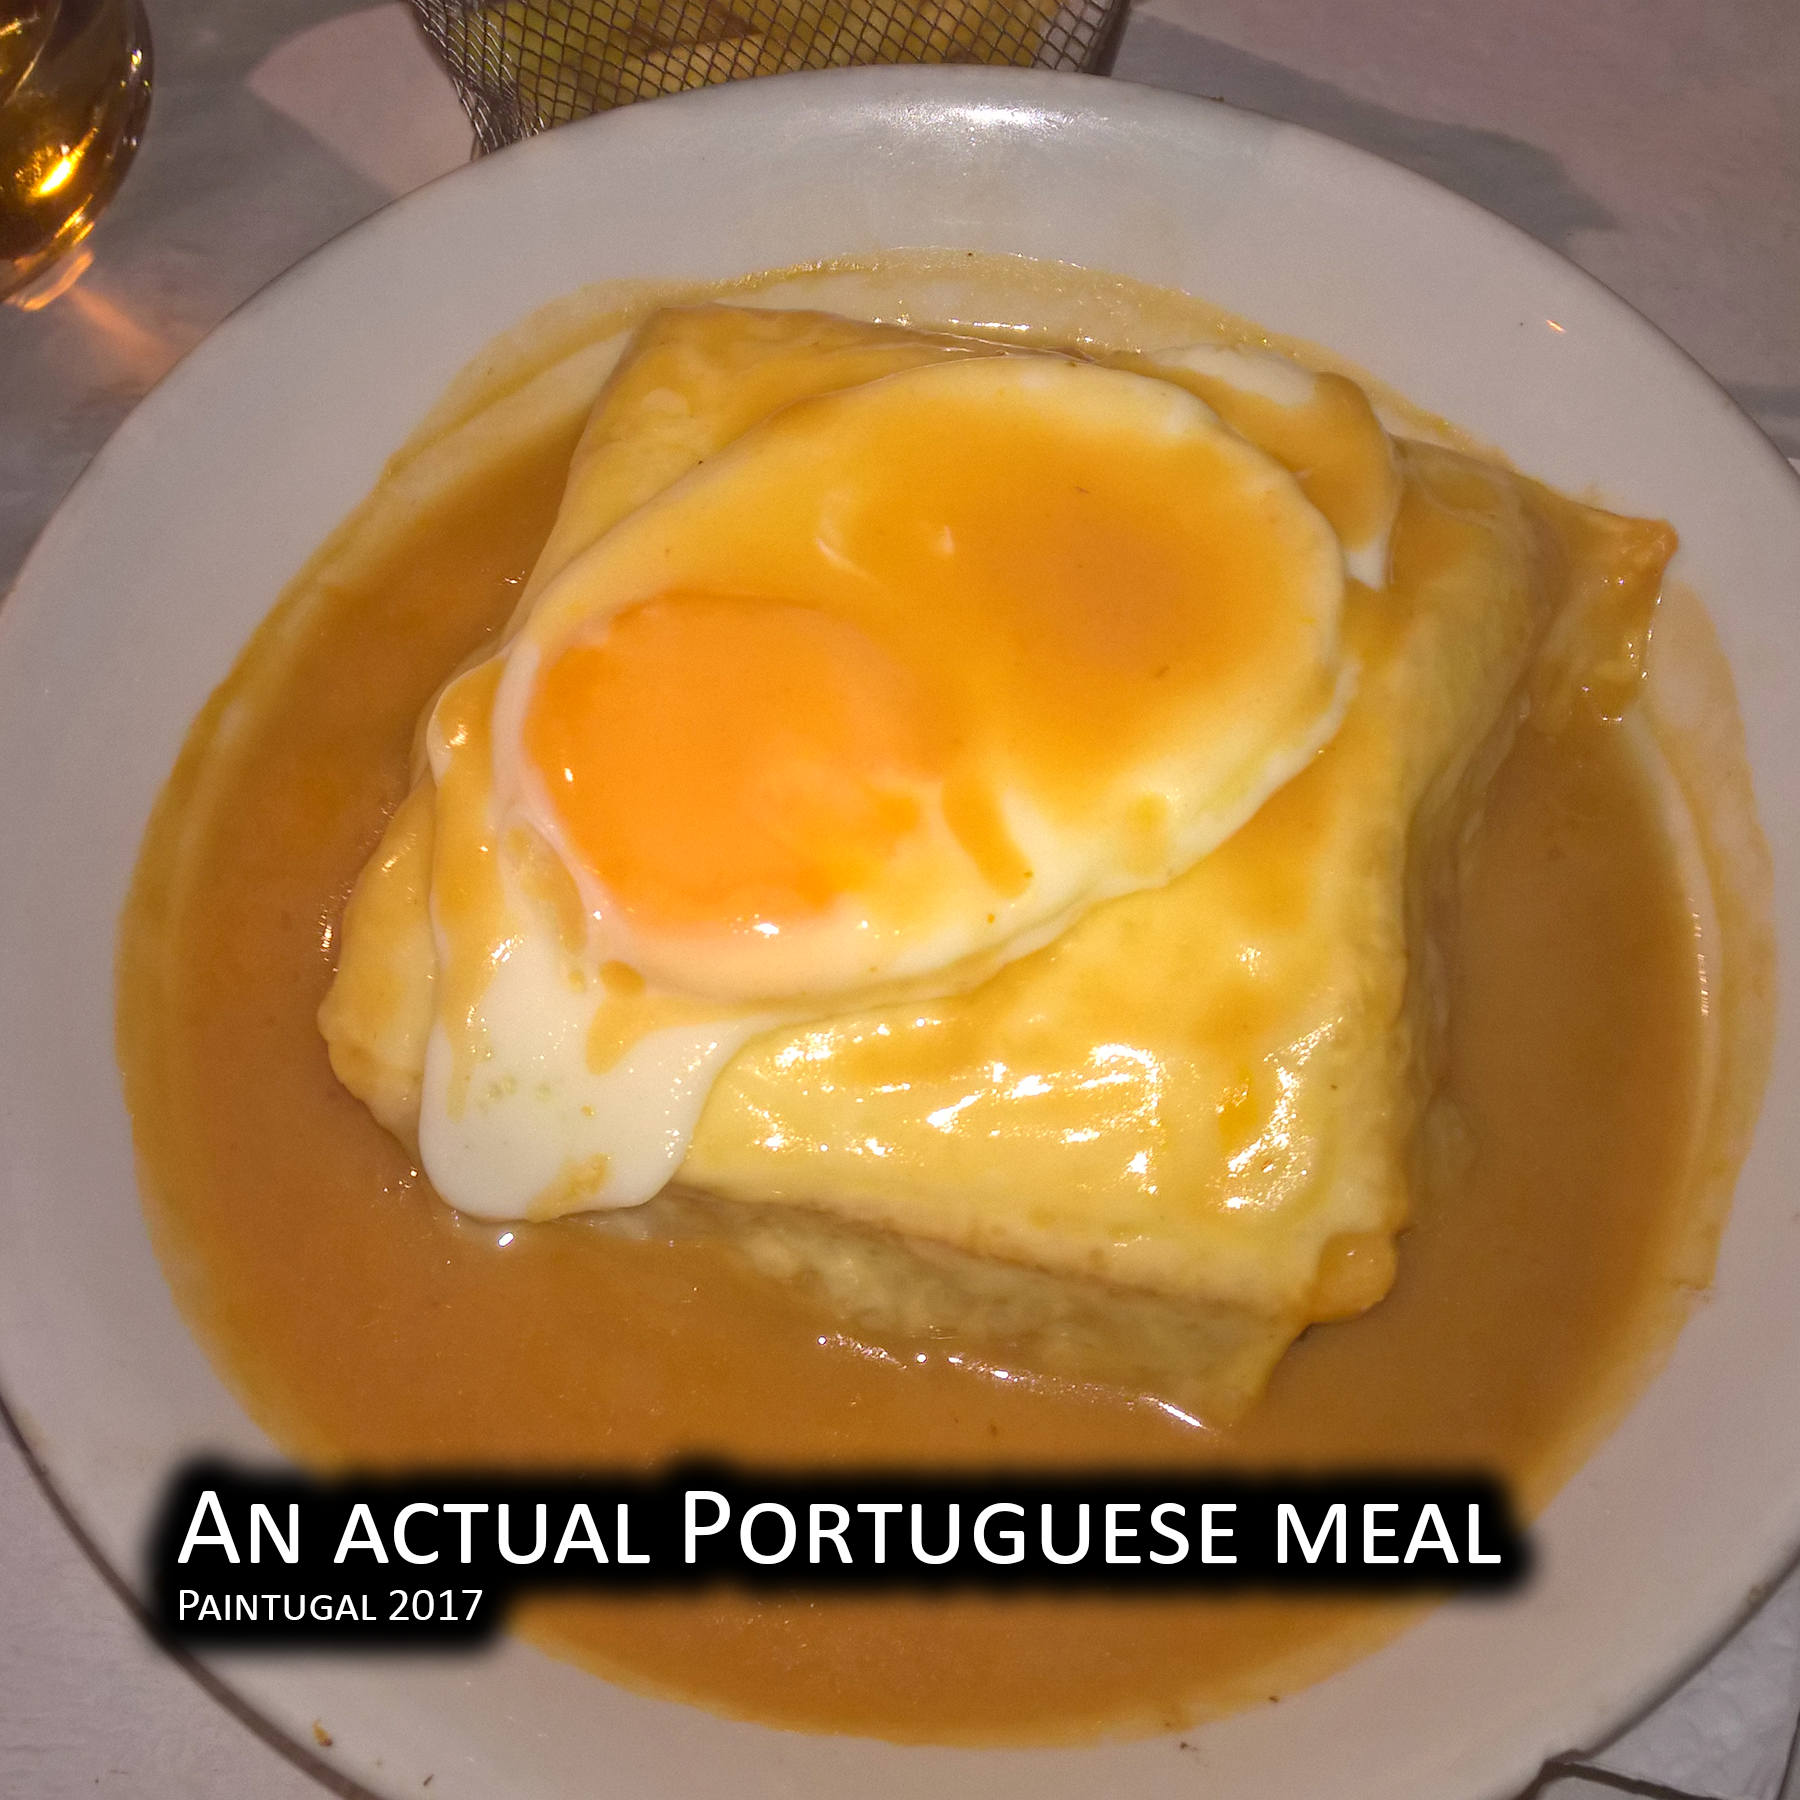 An actual Portuguese meal